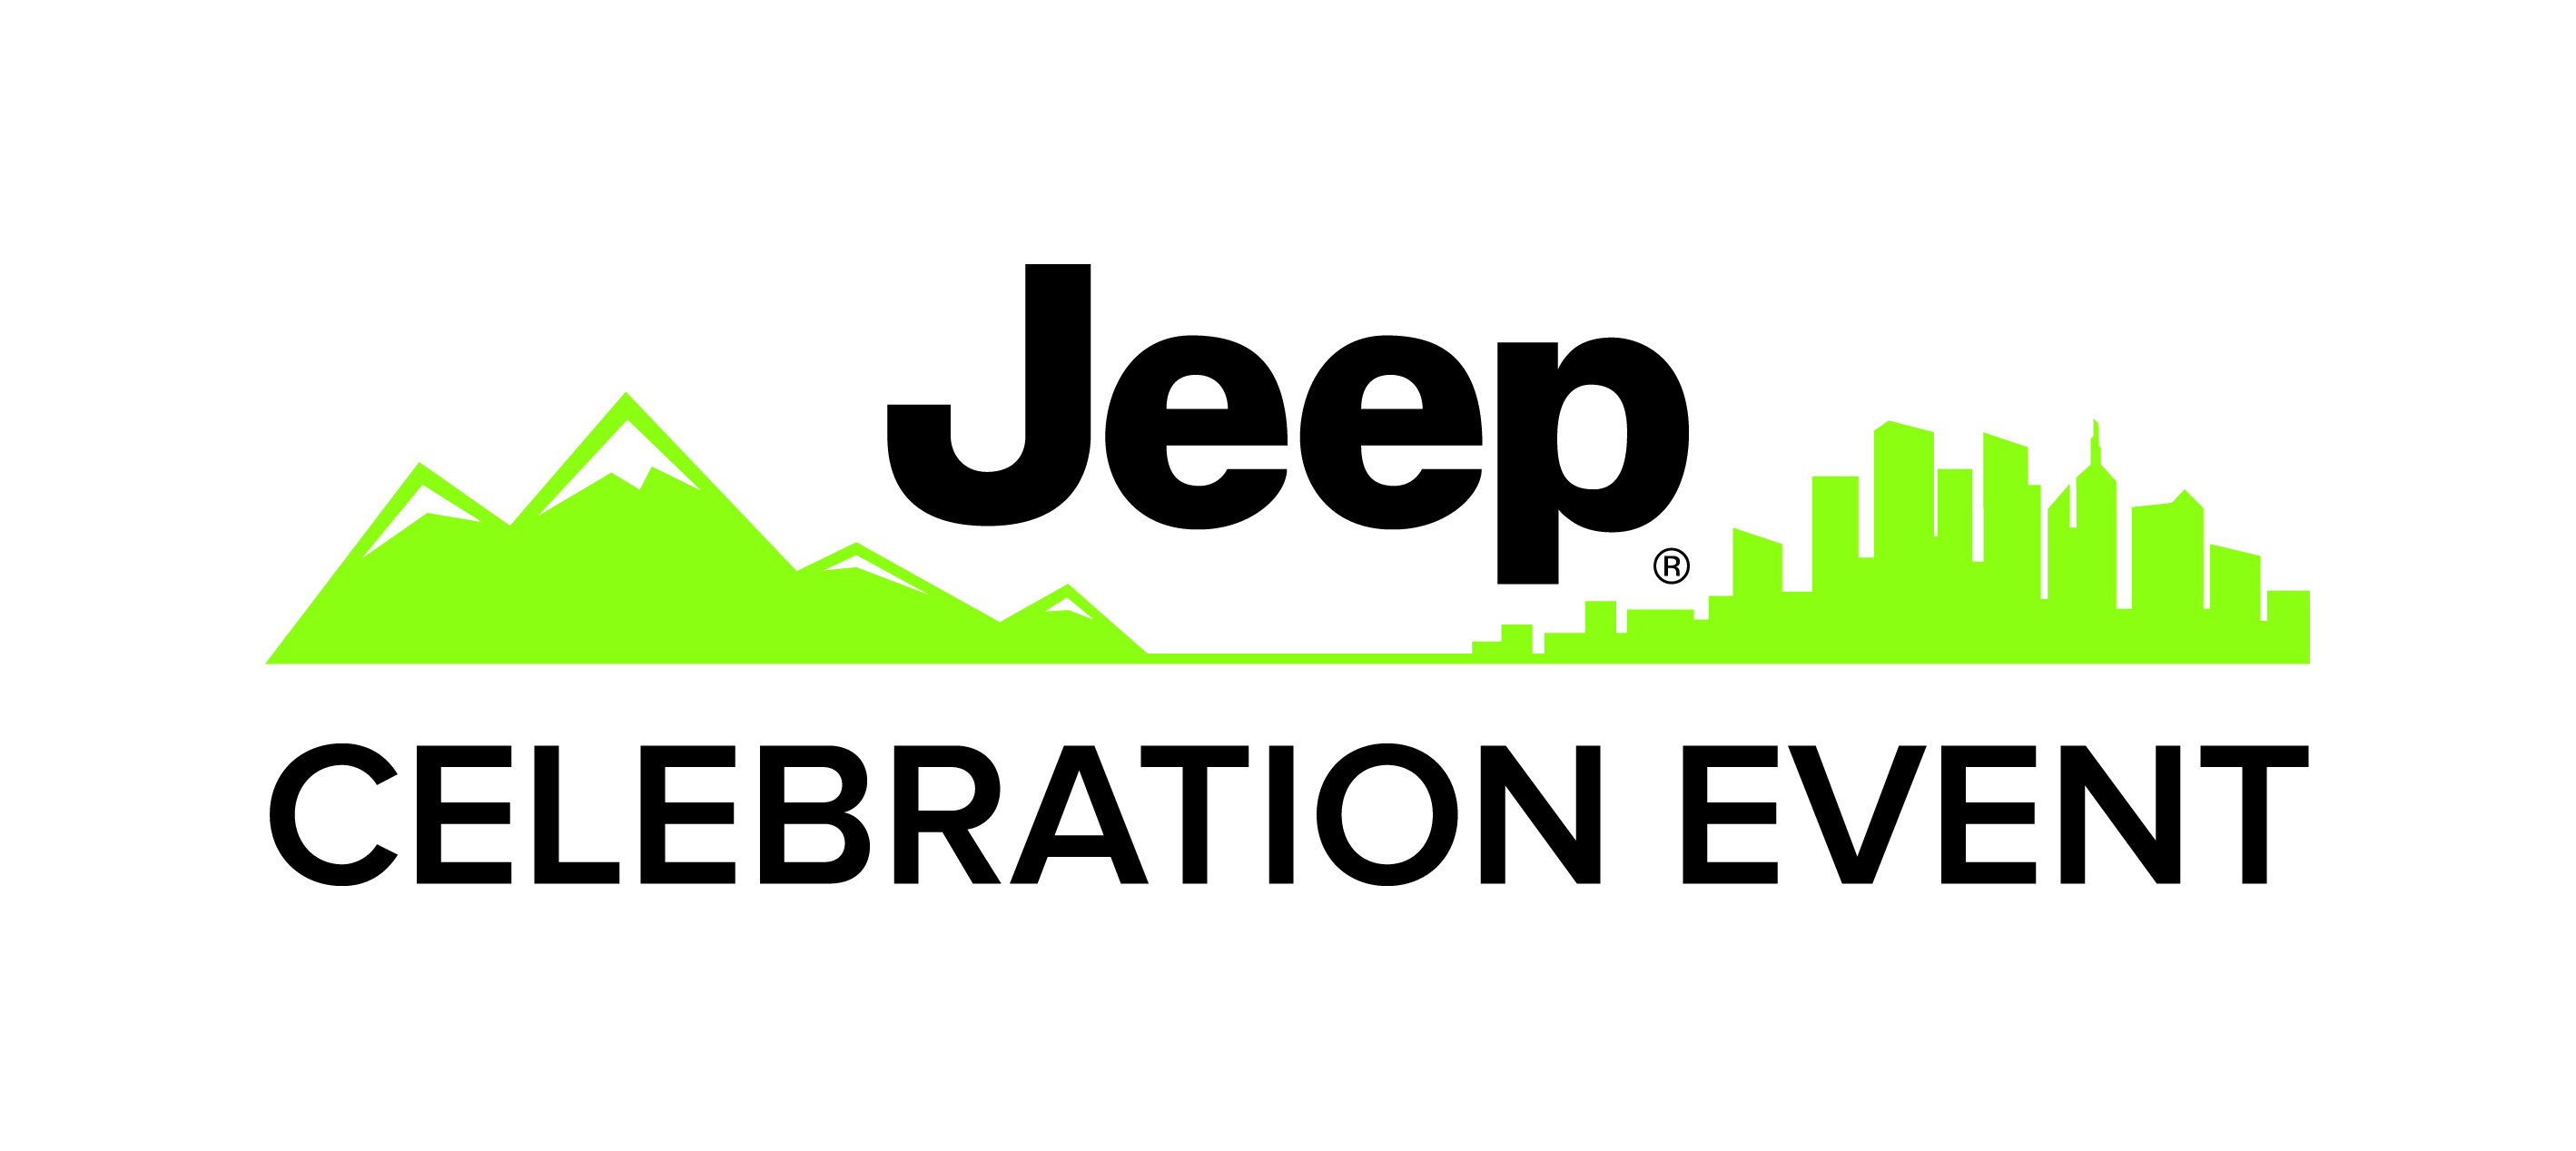 Jeep Celebration Event in Croton-On-Hudson, NY